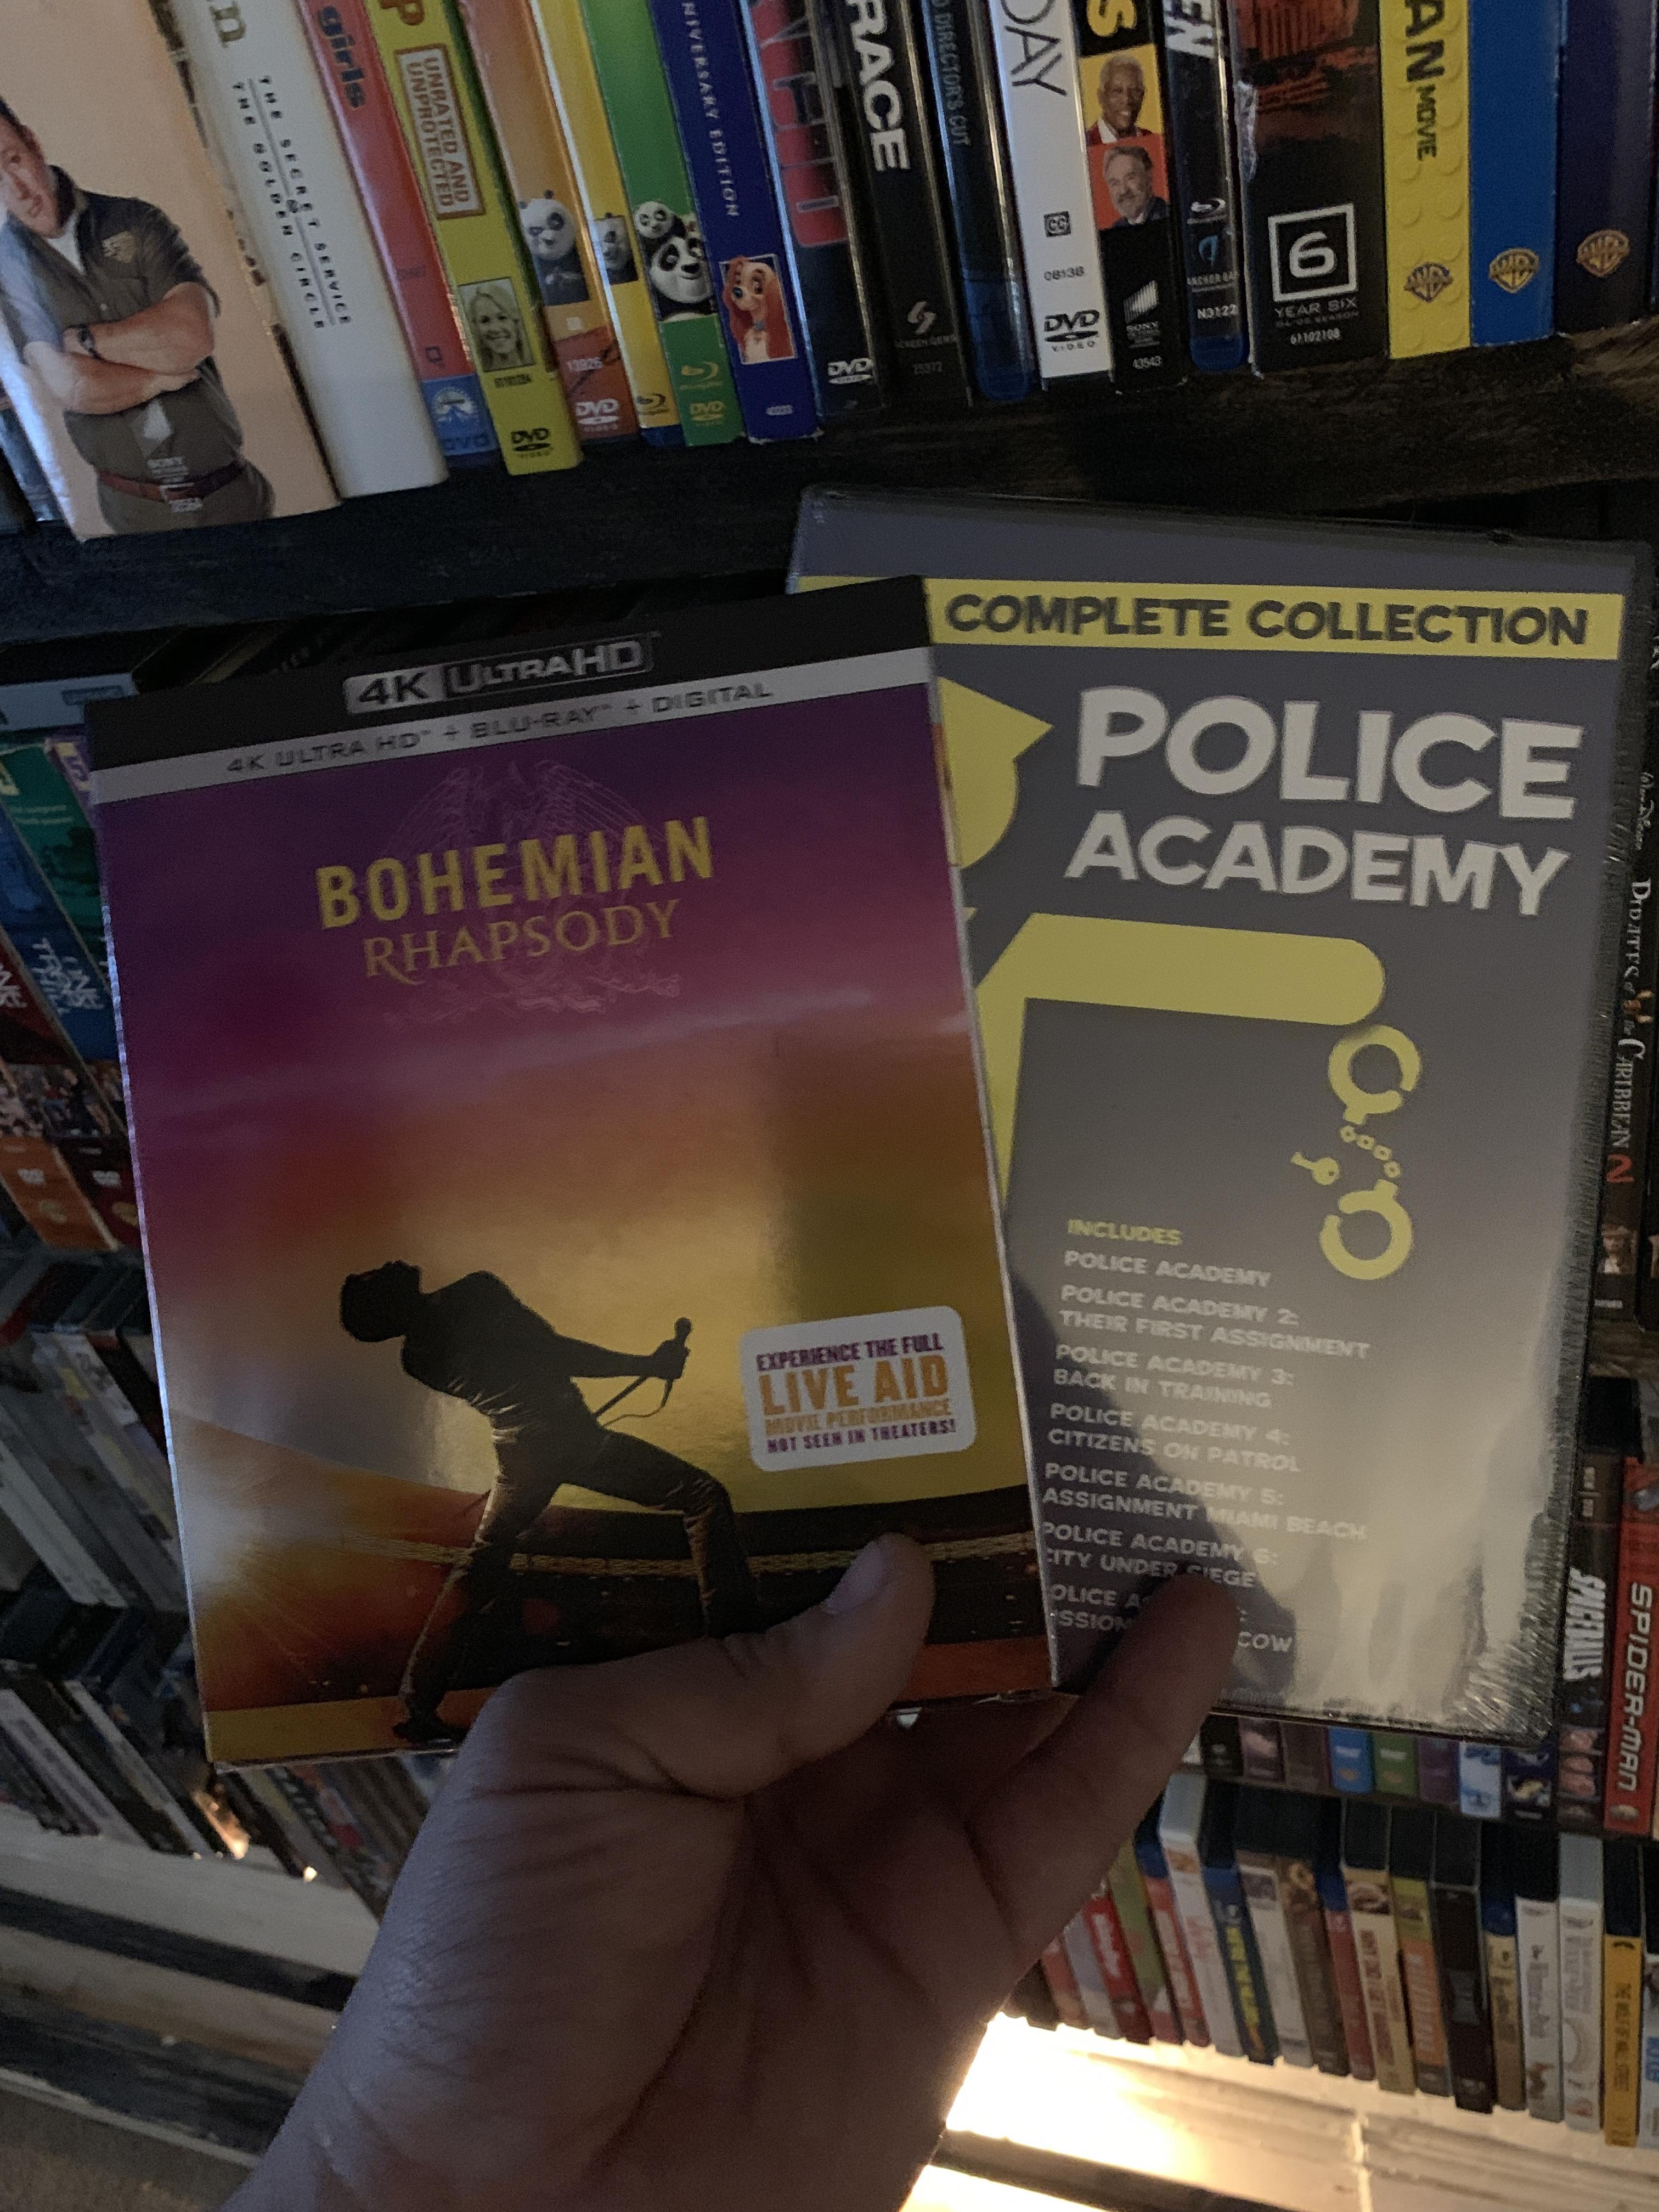 Streaming Bohemian Rhapsody Reddit : streaming, bohemian, rhapsody, reddit, Today's, Pickups., Wanting, Bohemian, Rhapsody, Can't, Wrong, Complete, Collection, Police, Academy., Though, Academy, Dvdcollection